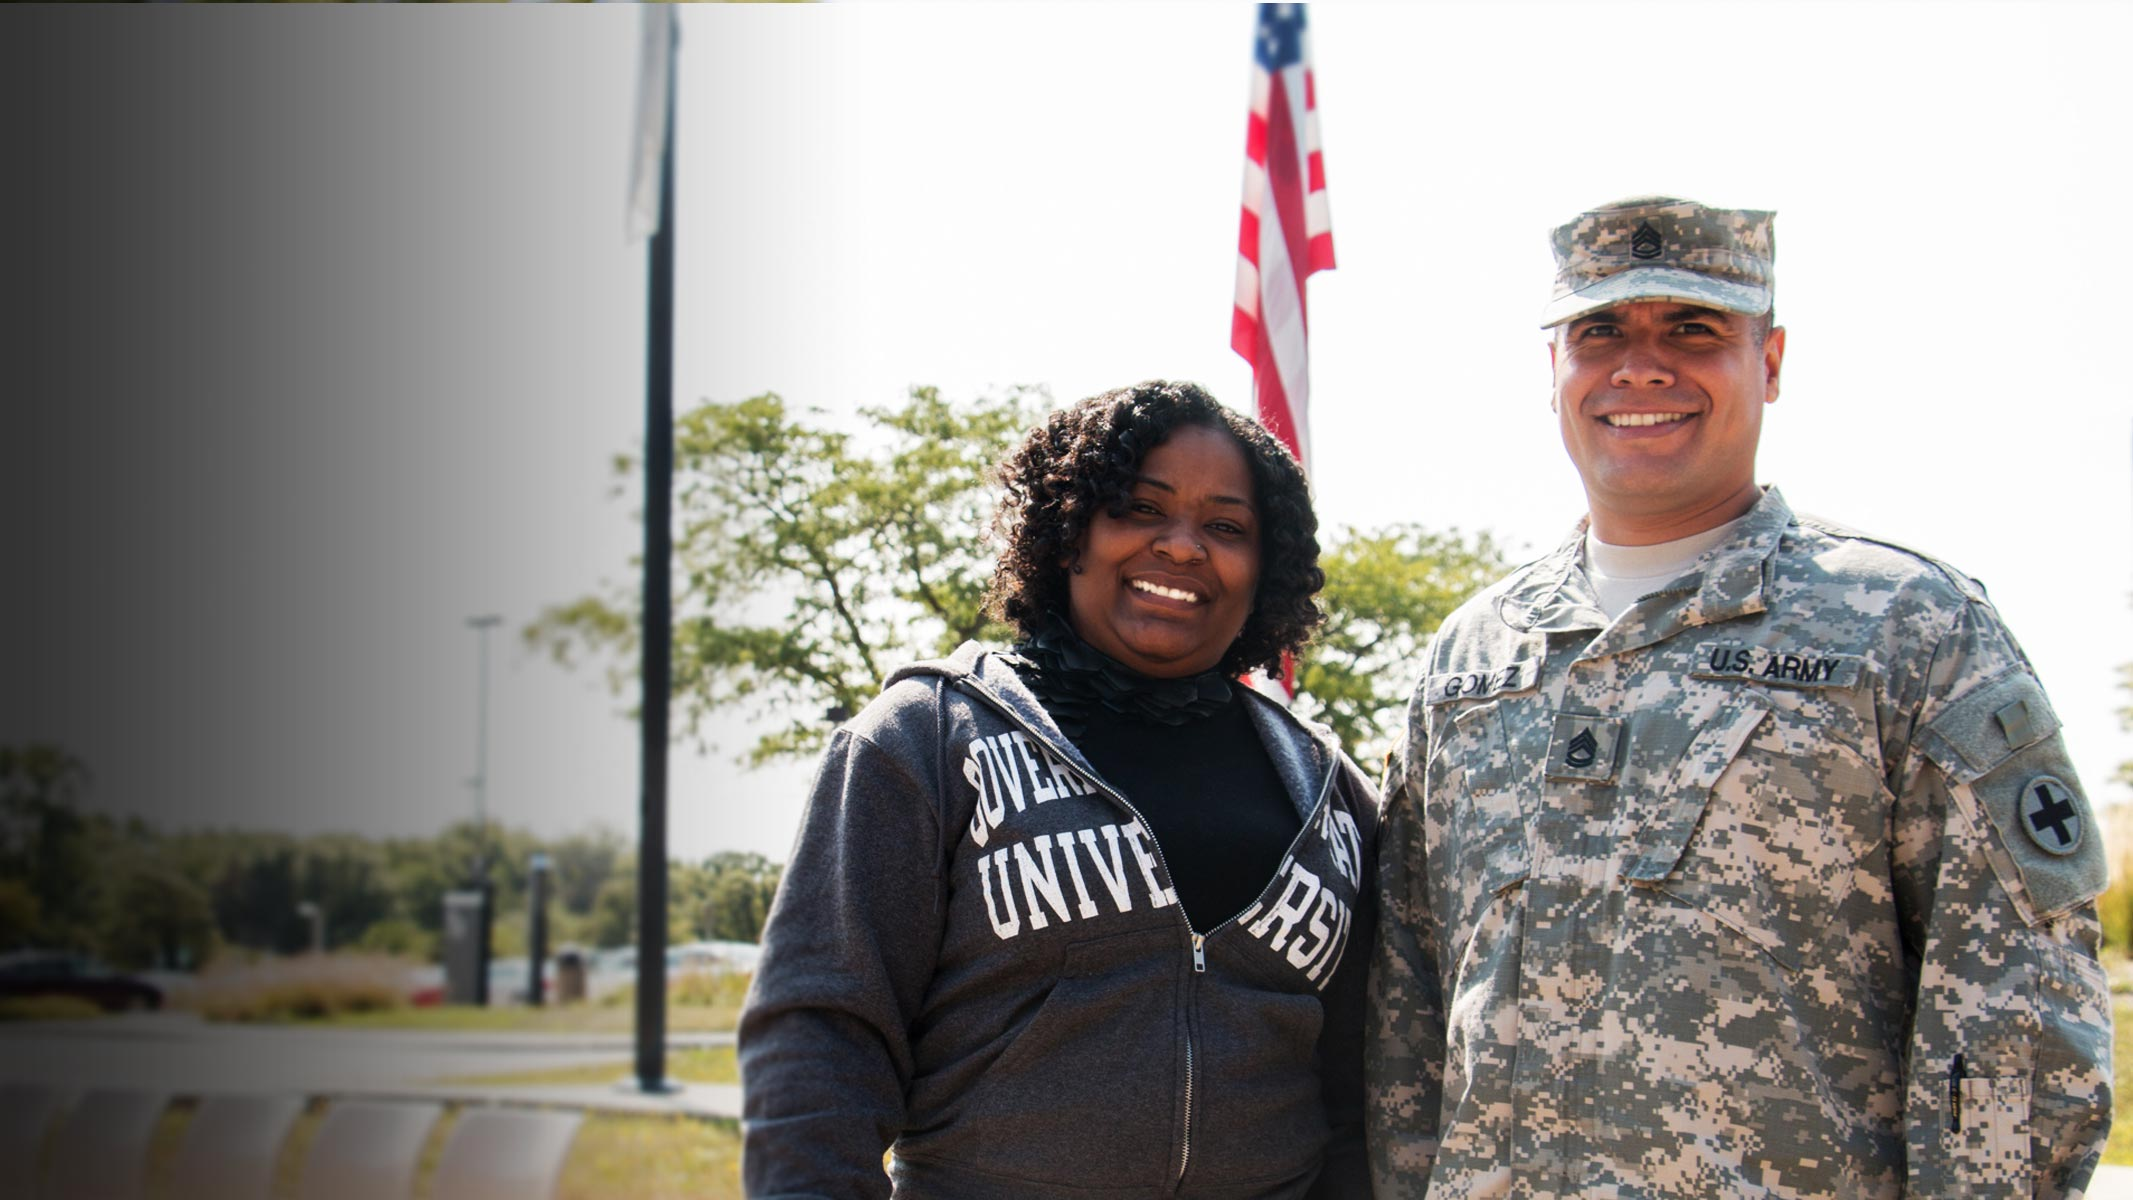 GSU Veteran and Military Personnel at GSU's campus